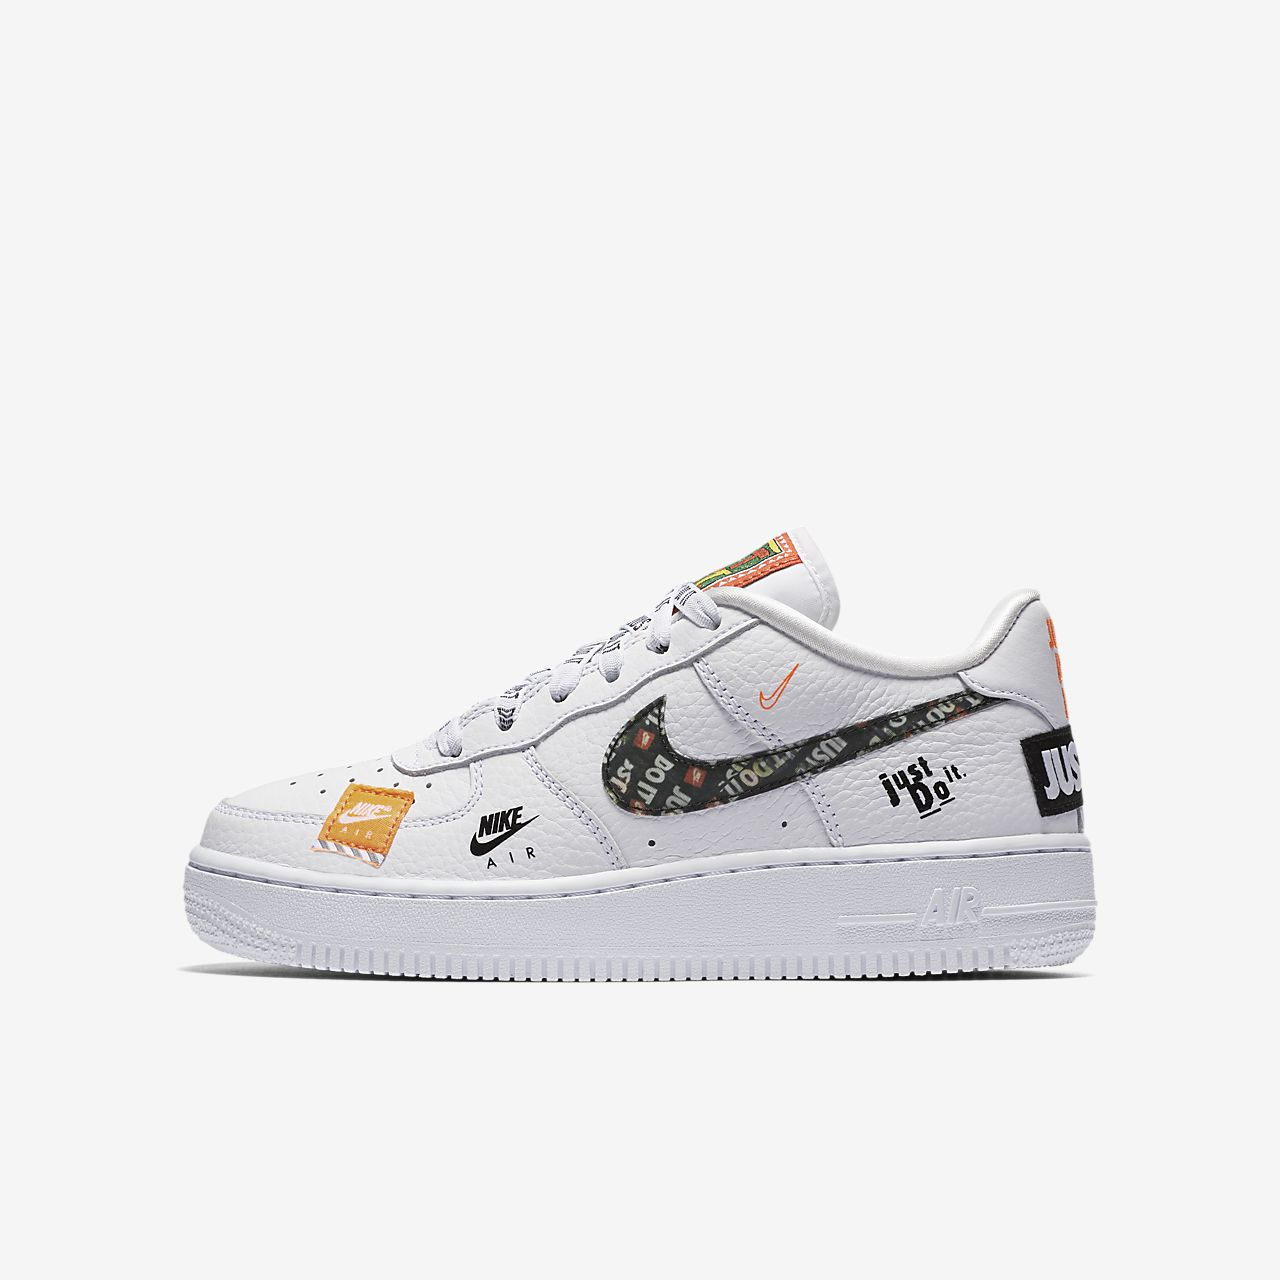 Nike Air Force 1 JDI PRM (GS) 大童运动童鞋